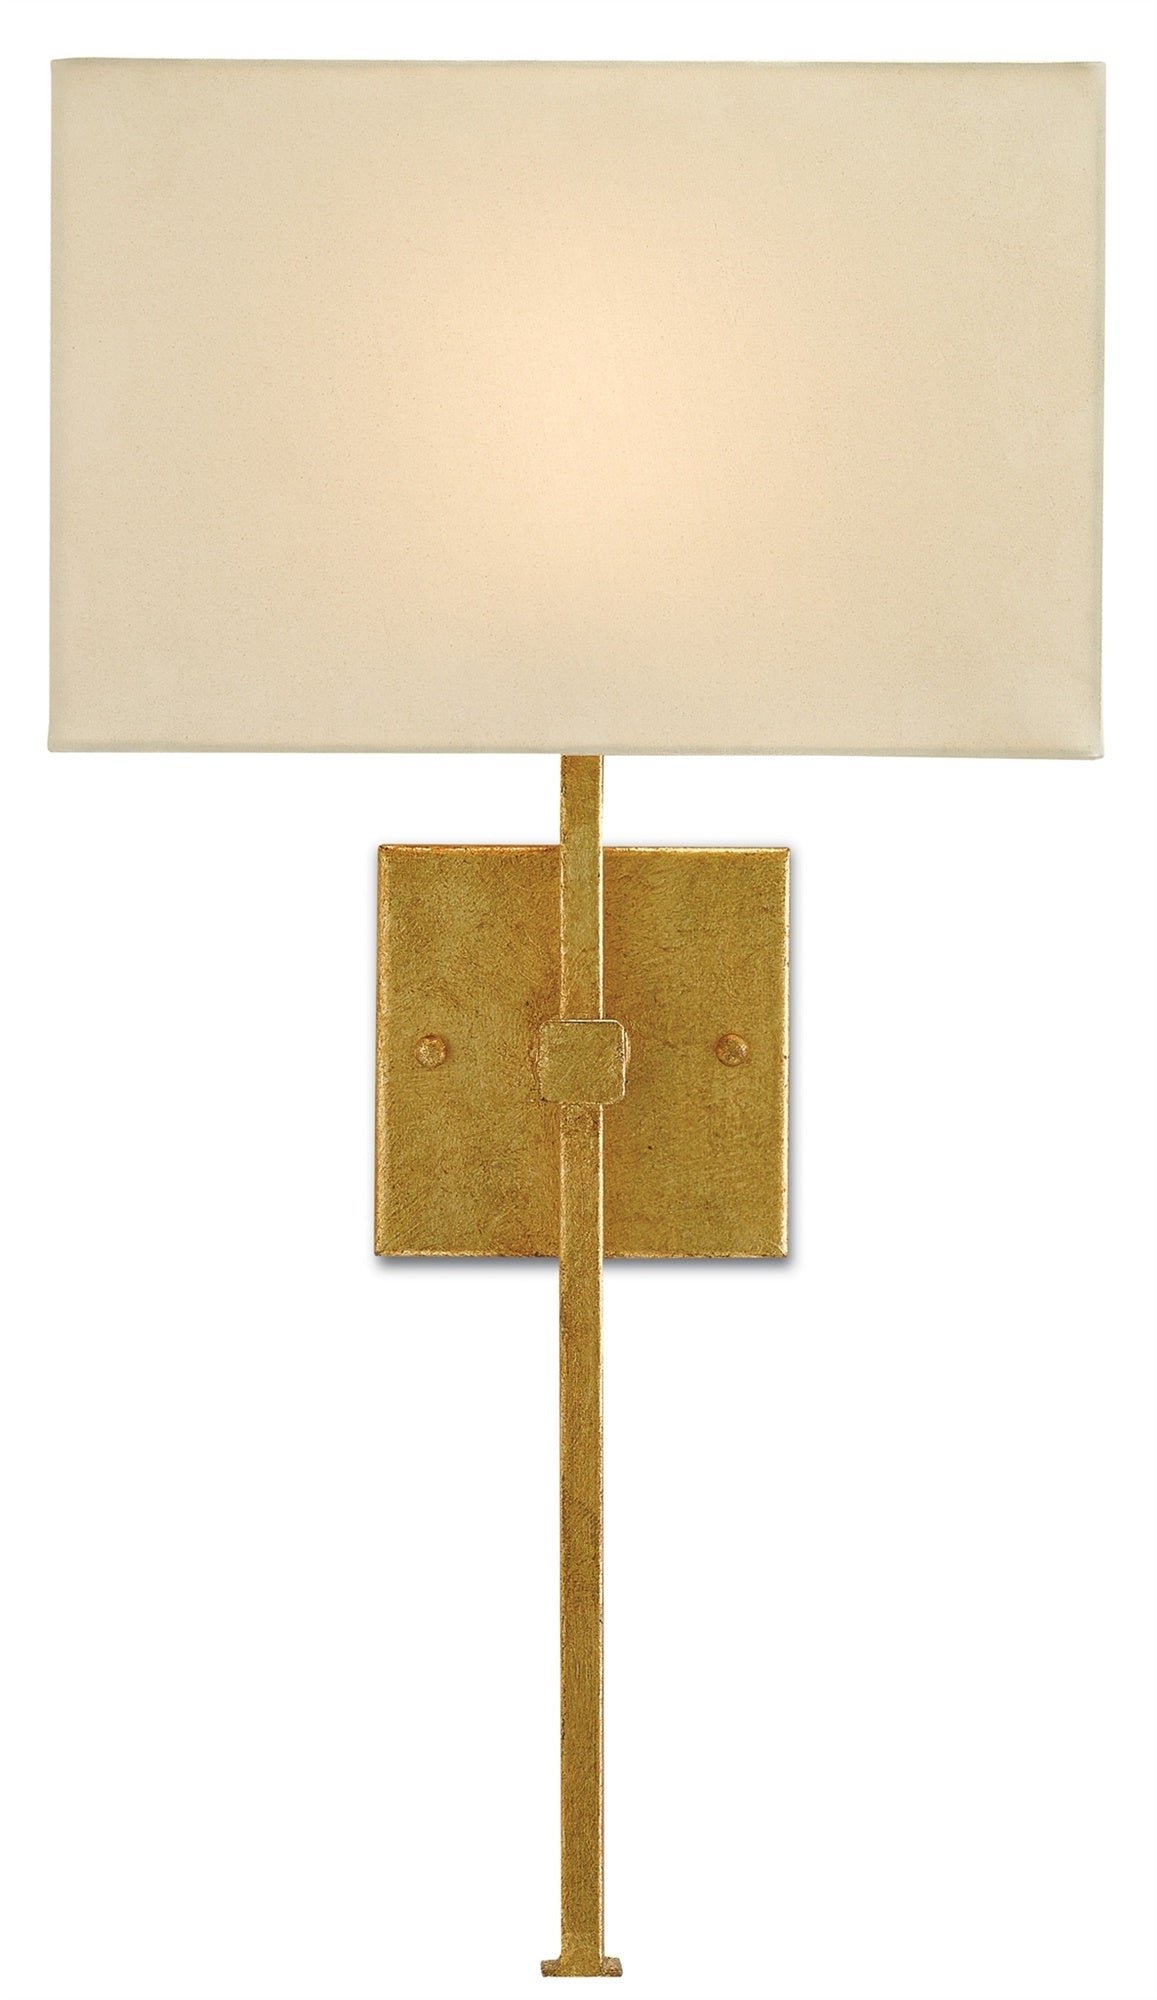 Currey and Company Ashdown Wall Sconce, Gold Leaf 5900-0005